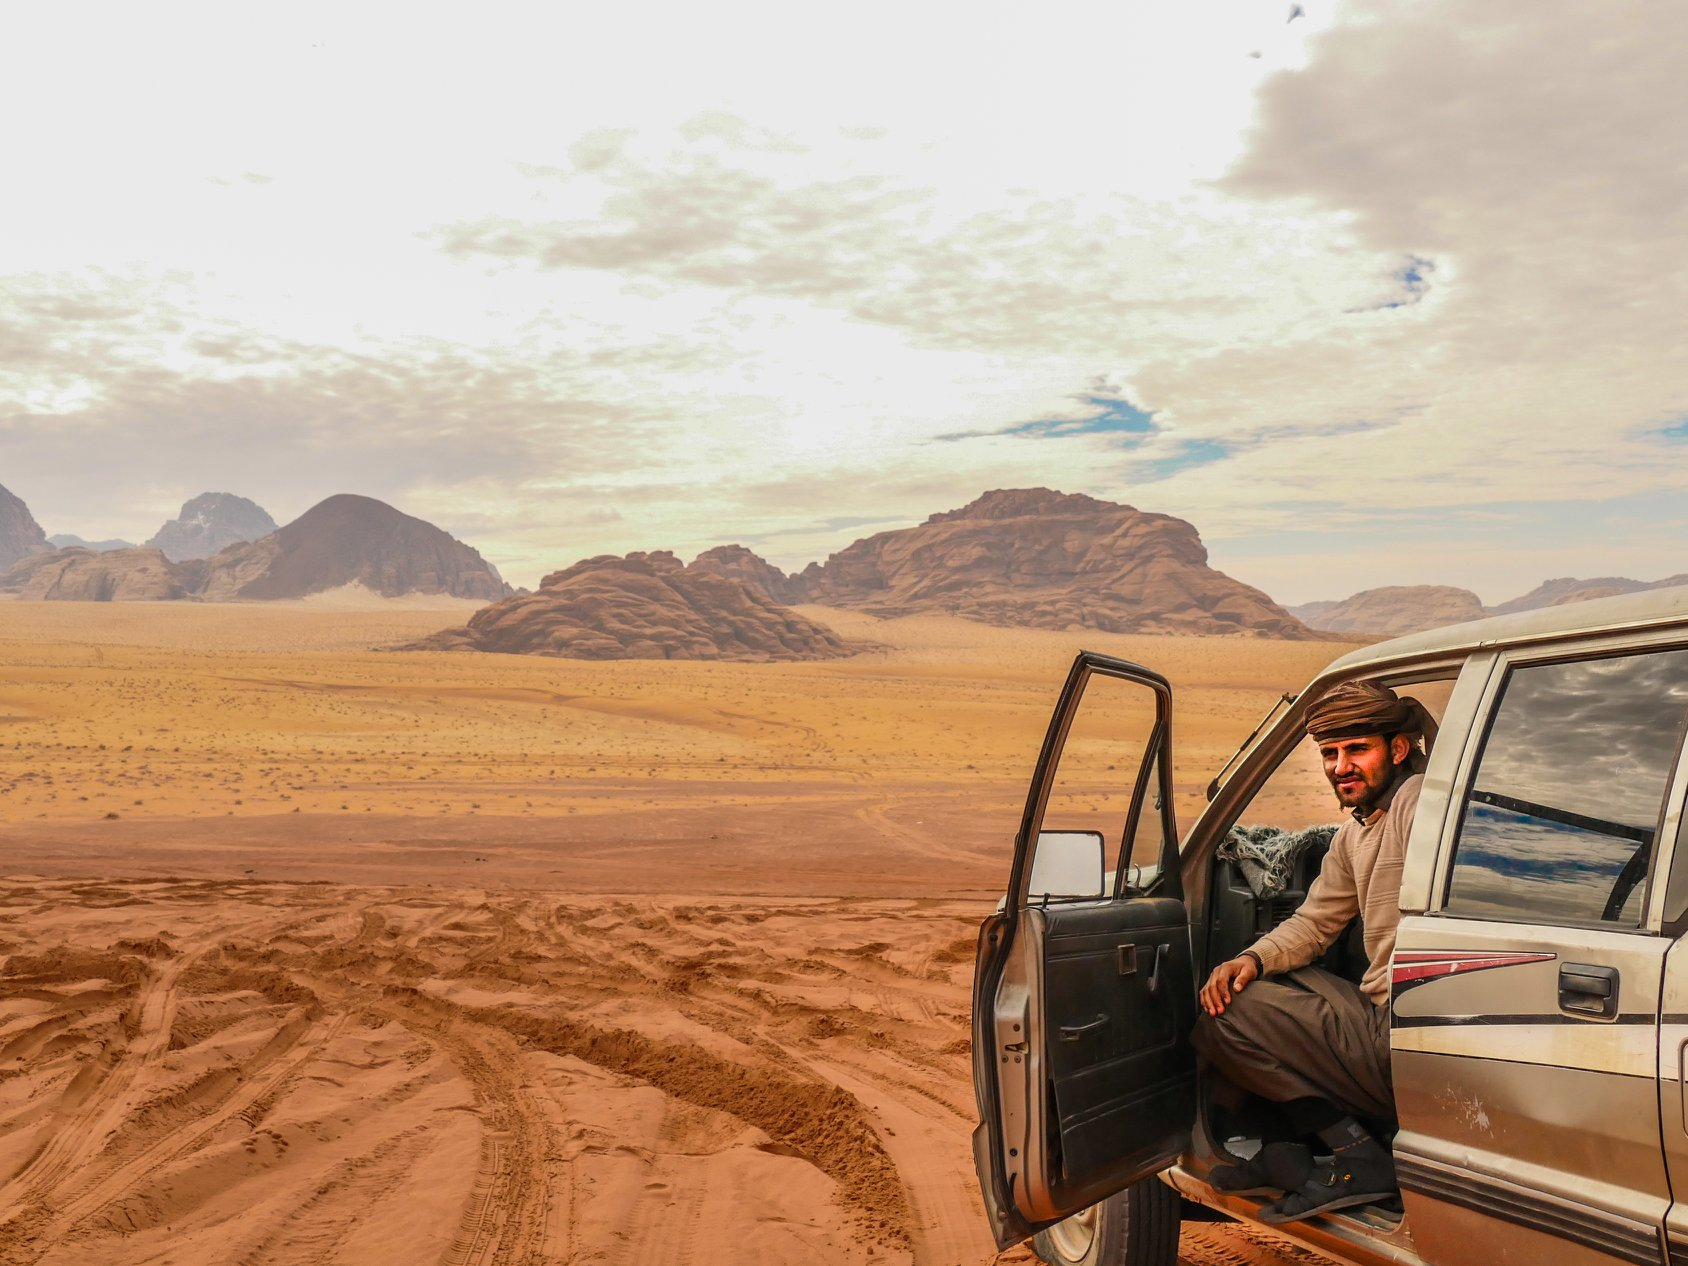 Best thing to do in wadi Rum